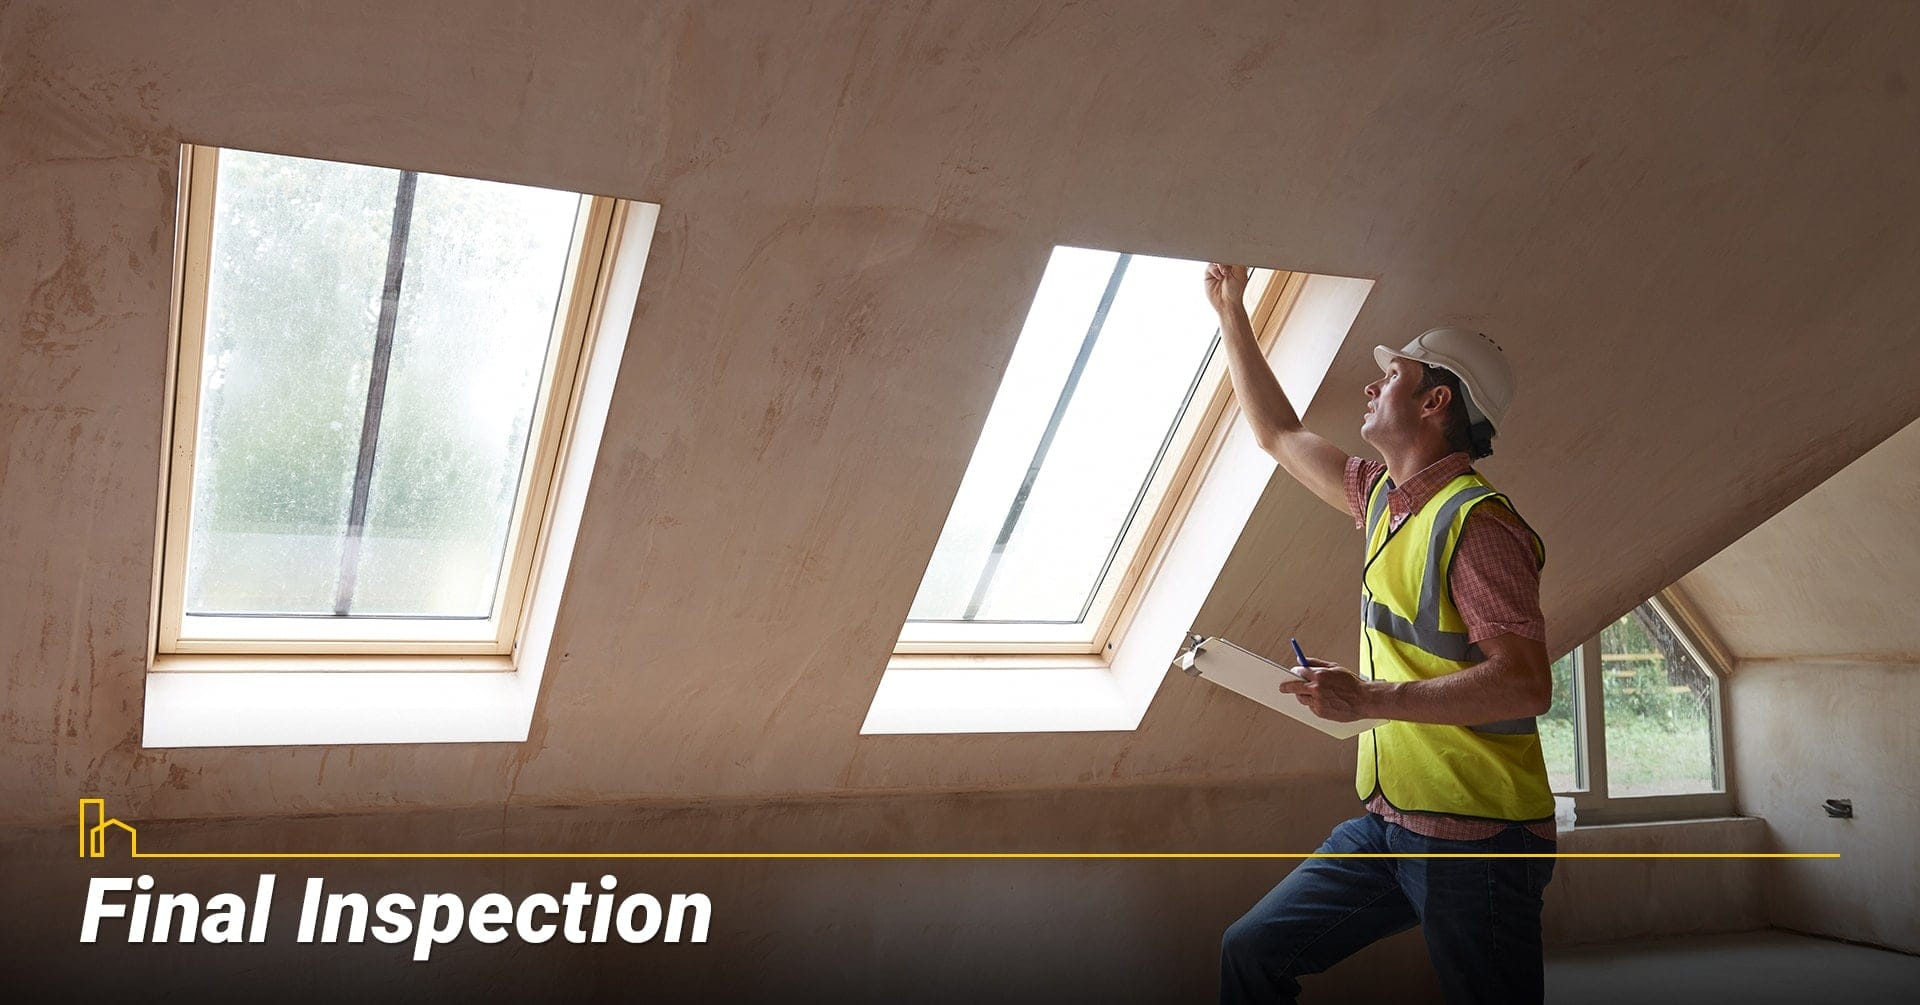 Final Inspection, inspect your project